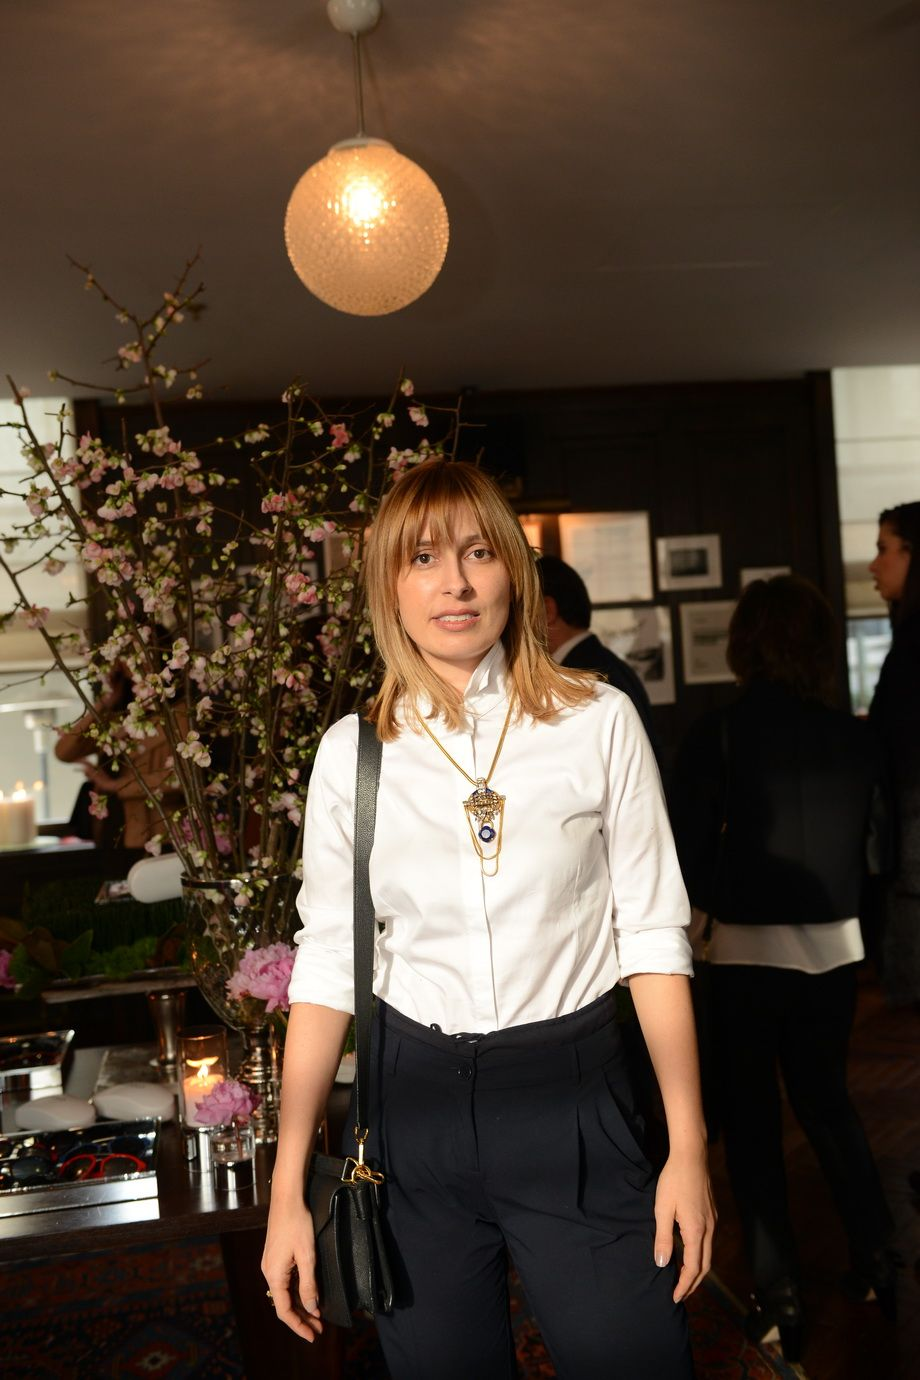 9da177f71c5 Vogue Turkey Chief Editor Seda Domanic. Find this Pin and more on THE PINKO  INVASION event ...